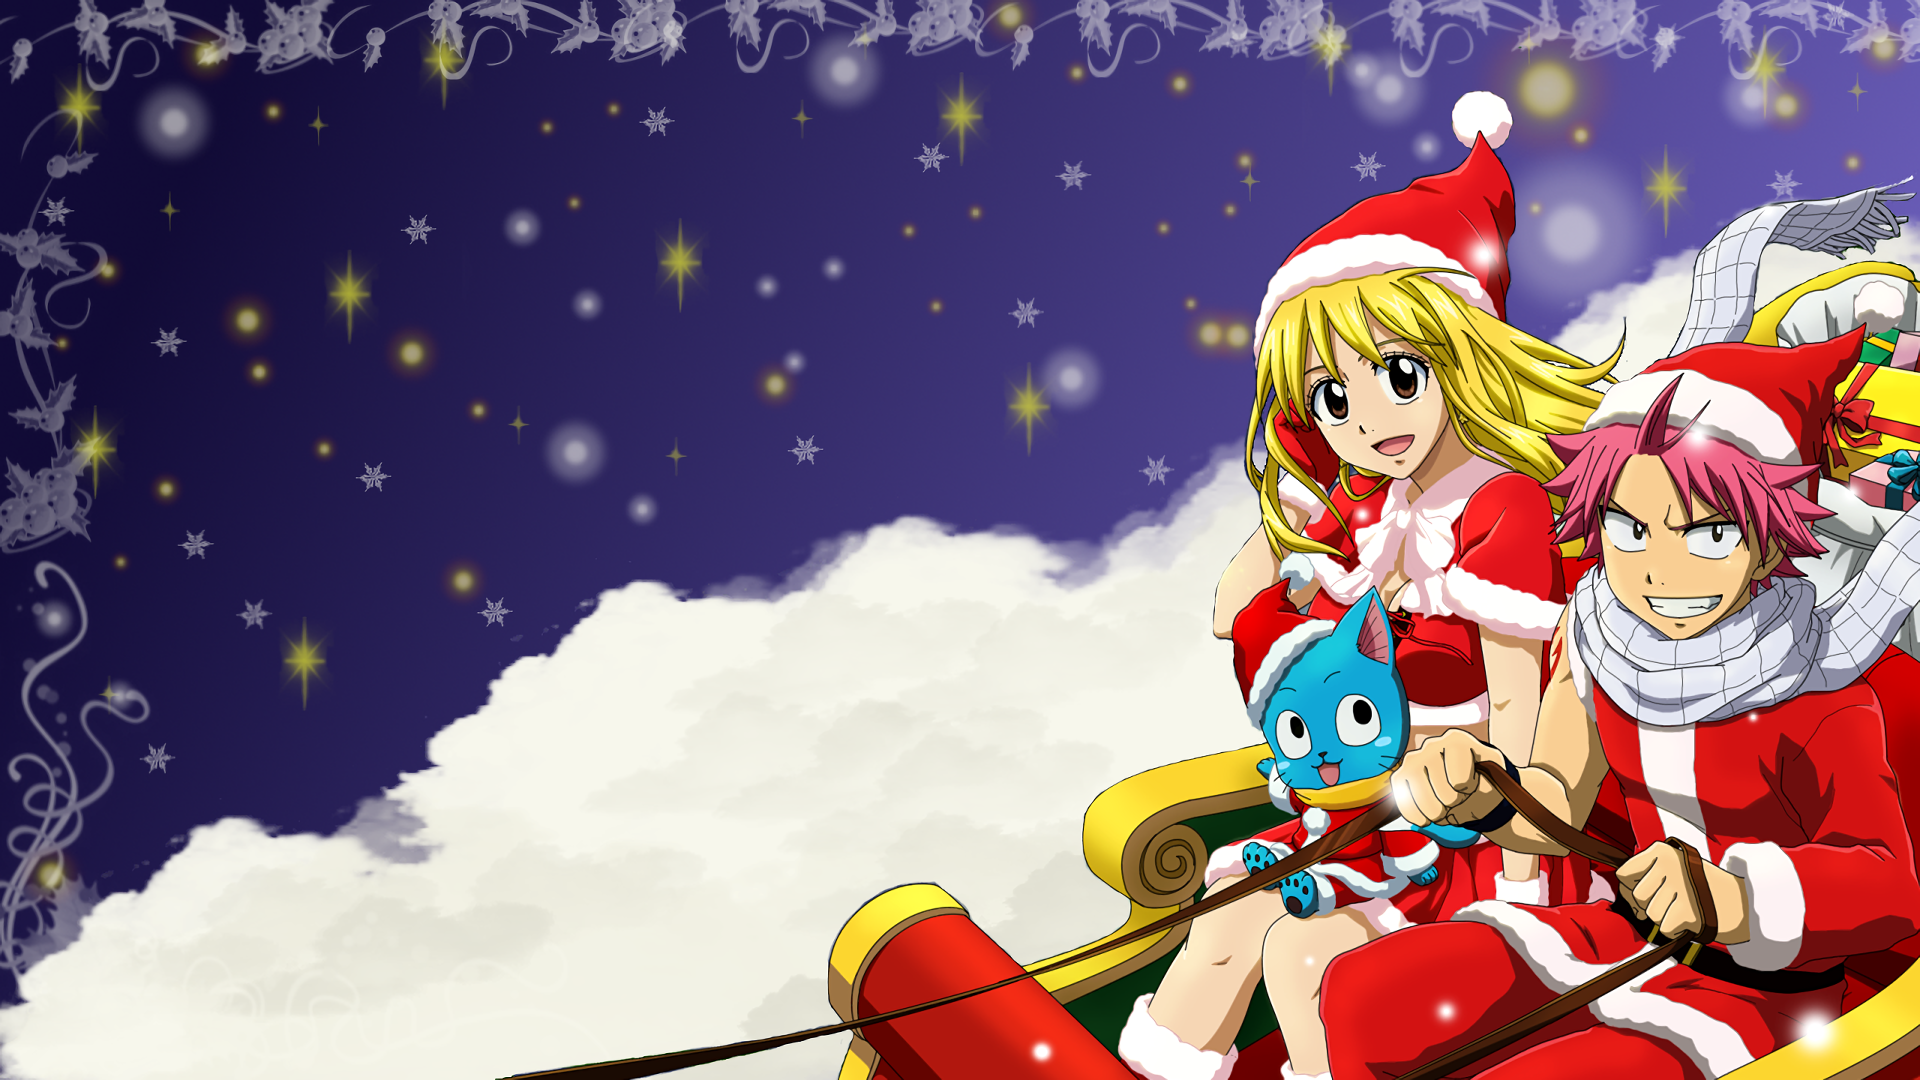 Fairy tail hd wallpaper background image 1920x1080 - Anime merry christmas wallpaper ...